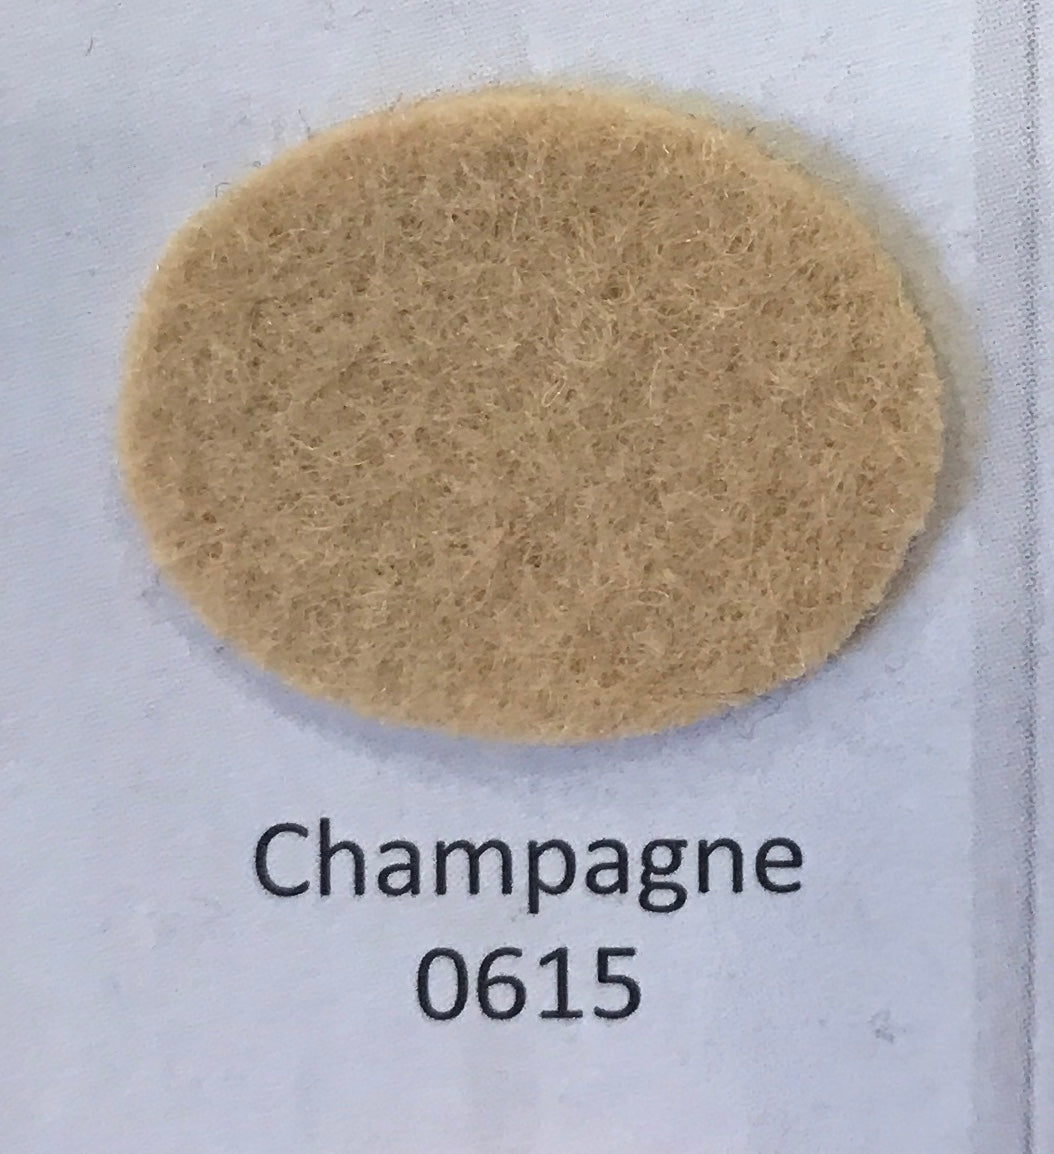 Champagne - 0615